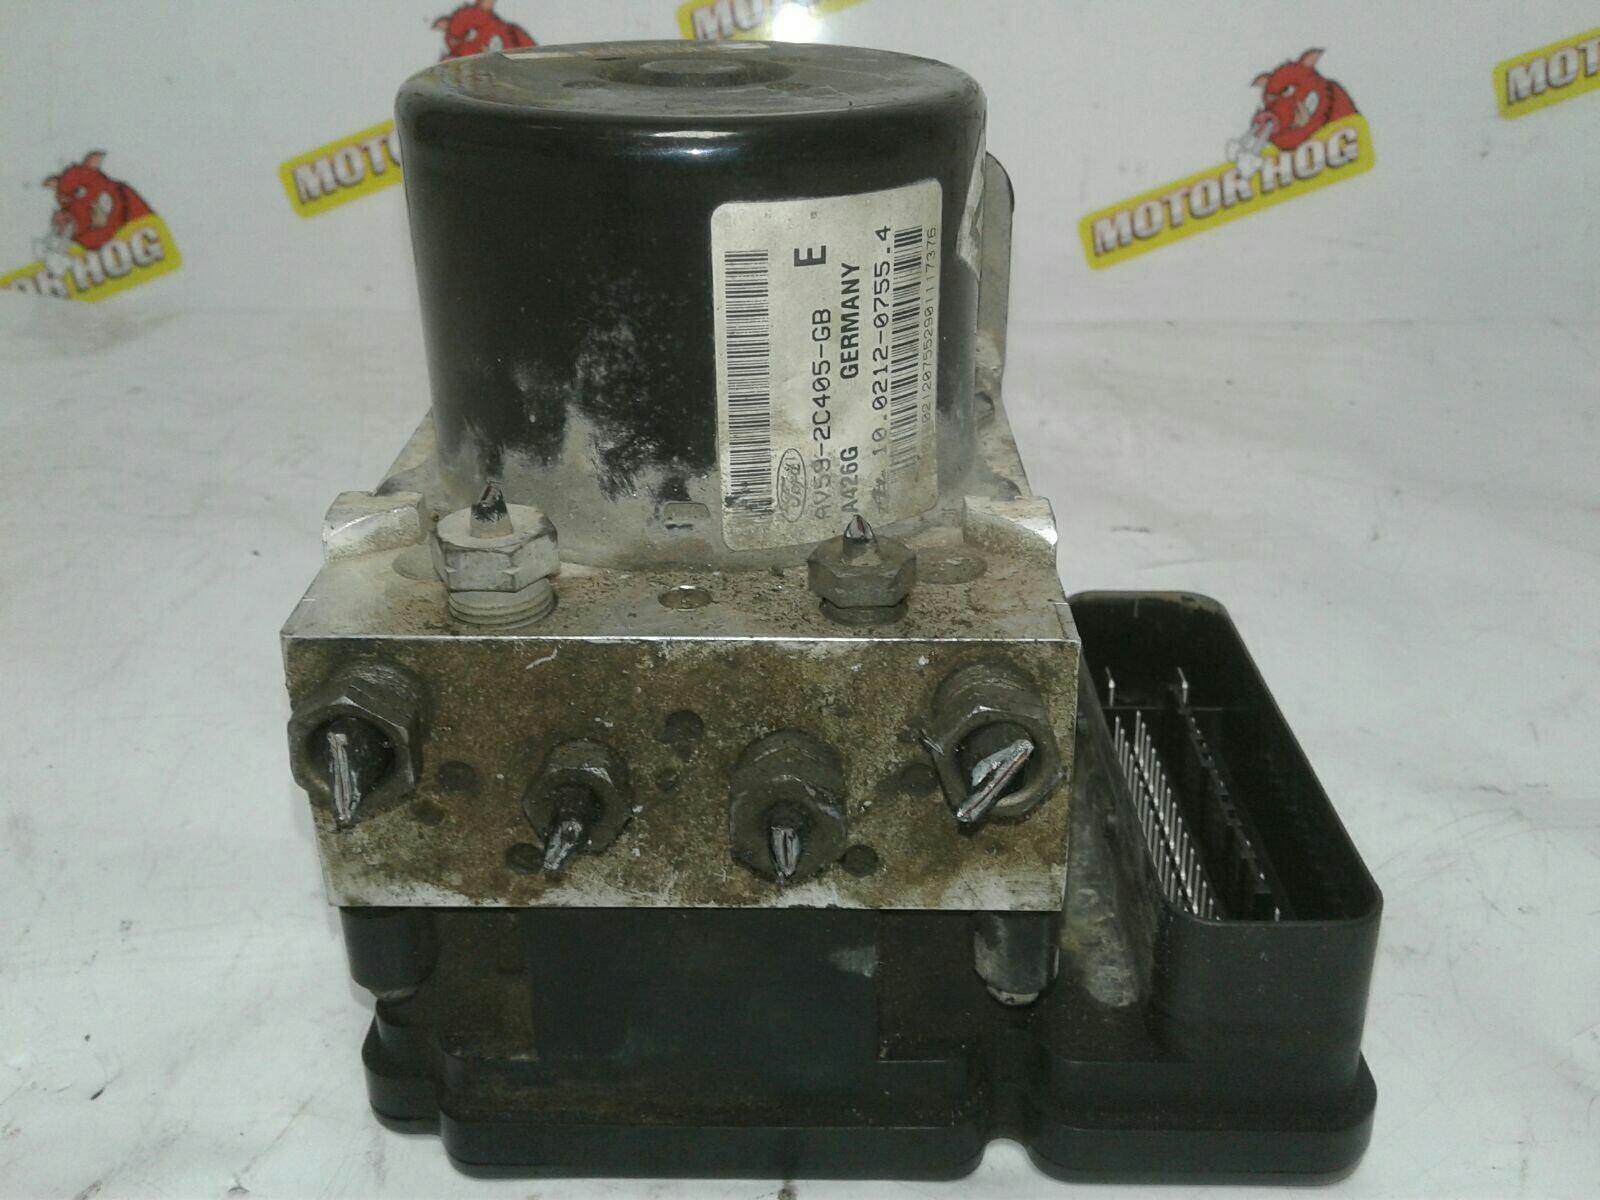 Ford Fiesta 2009 To 2012 Abs Control Module Diesel Manual For Brake Wiring Diagram Pump Tdci 16 Ecu Warranty 5189567